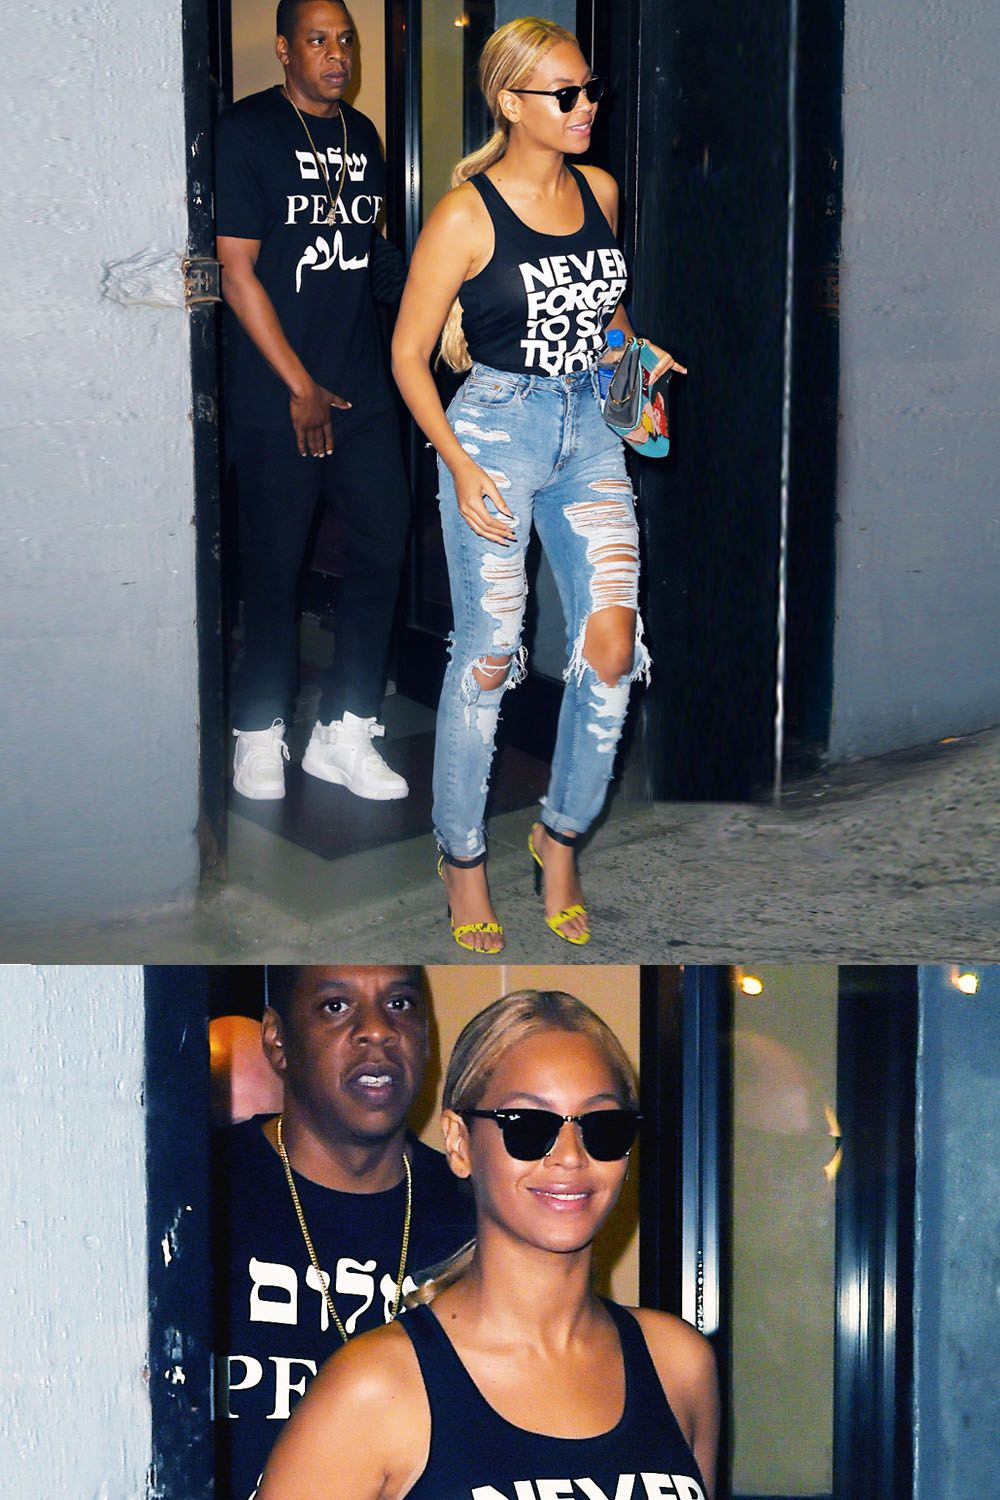 da6786e2a9ecf 50+ Best Beyonce Outfits in 2017 - Beyonce Street Style Inspiration